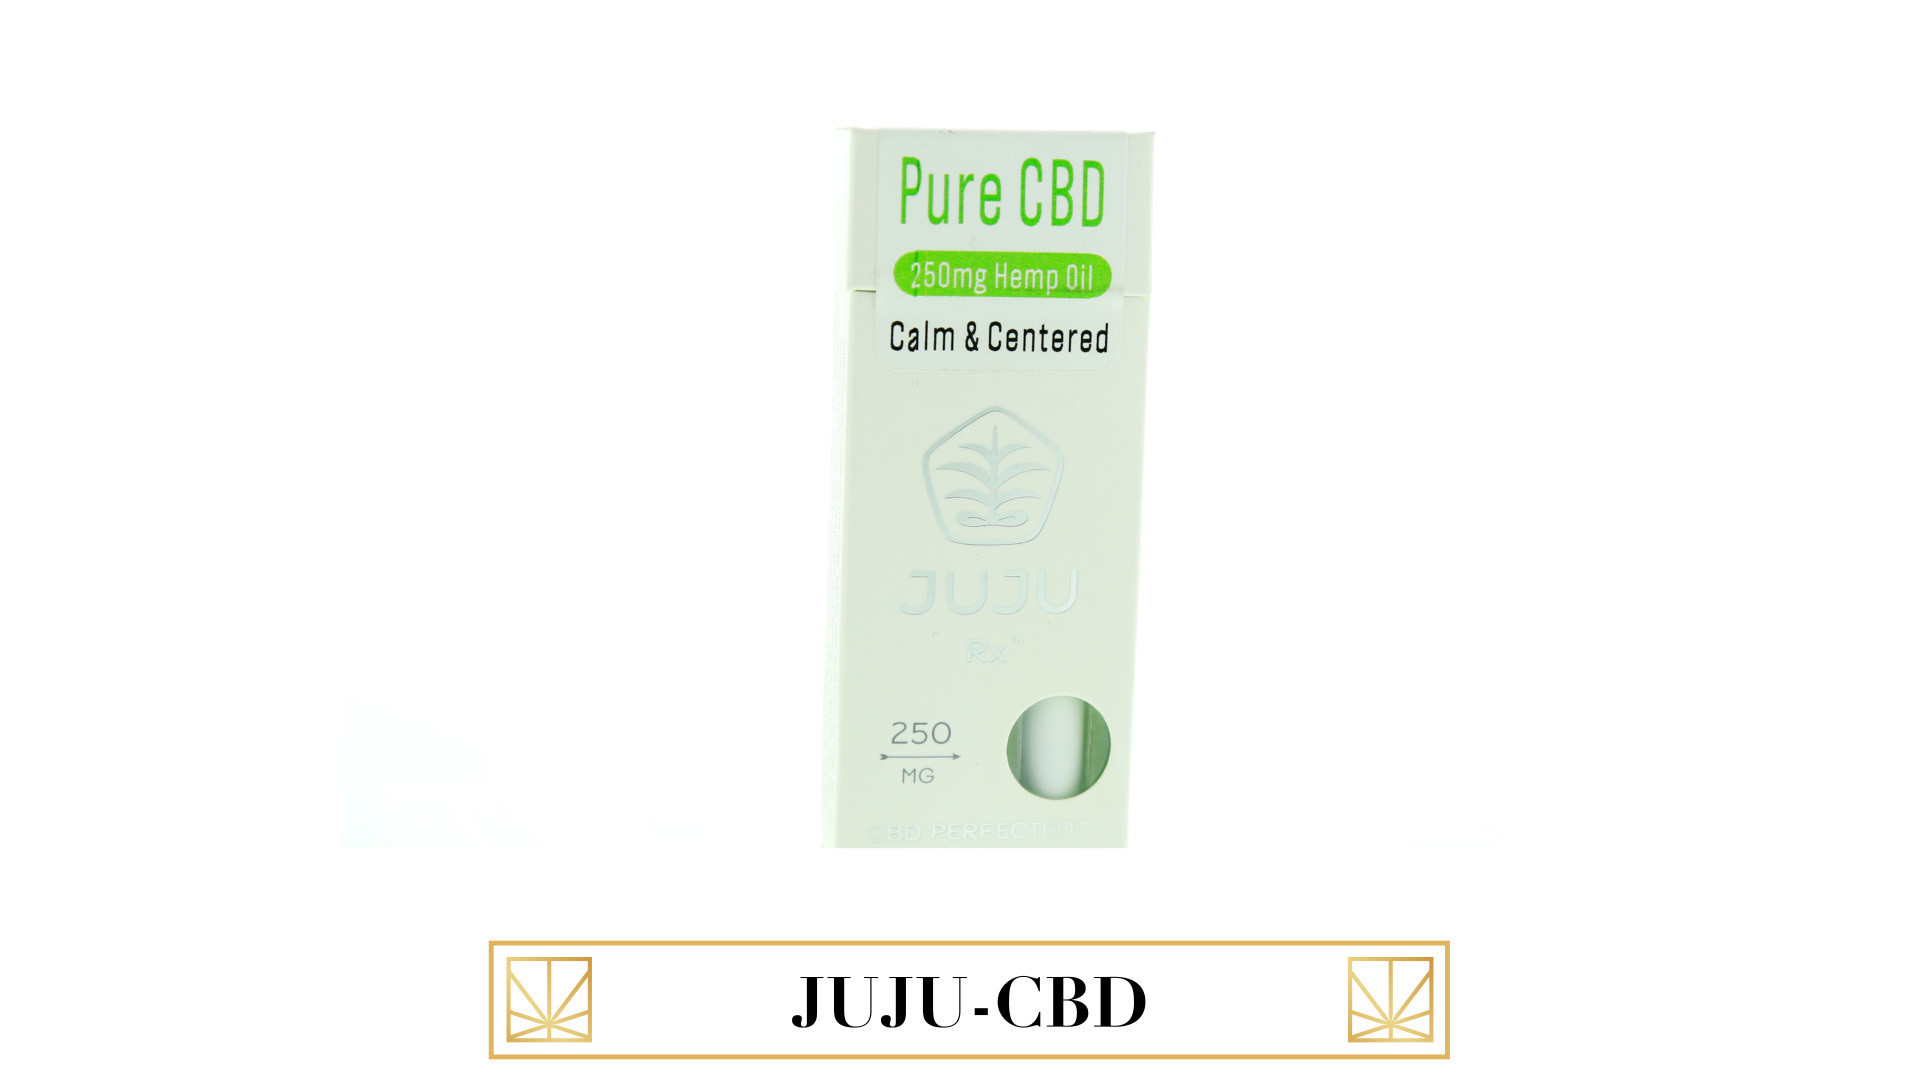 <p>CBD gives a relaxing comfortable body focused experience. Unique cold-press processmaintains flavor purity. Balanced and clear headed. Experience CBDwithout any of the hassle</p>  <p>No PG/PEG or additives</p>